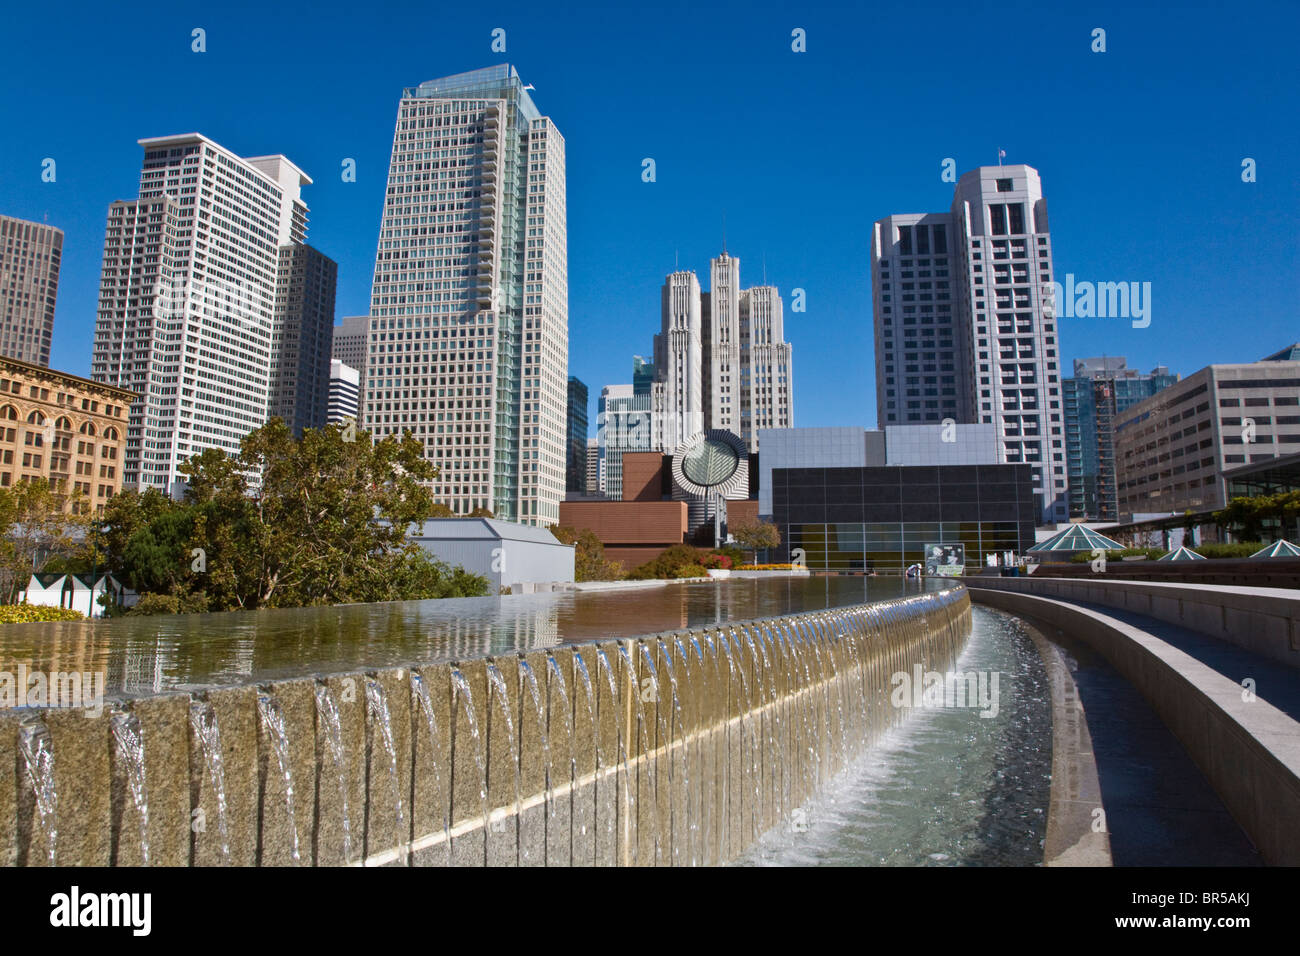 MARTIN LUTHER KING MEMORIAL WATER FOUNTAIN and the San Francisco Modern Art Museum YERBA BUENA CENTER -SAN FRANCISCO, - Stock Image